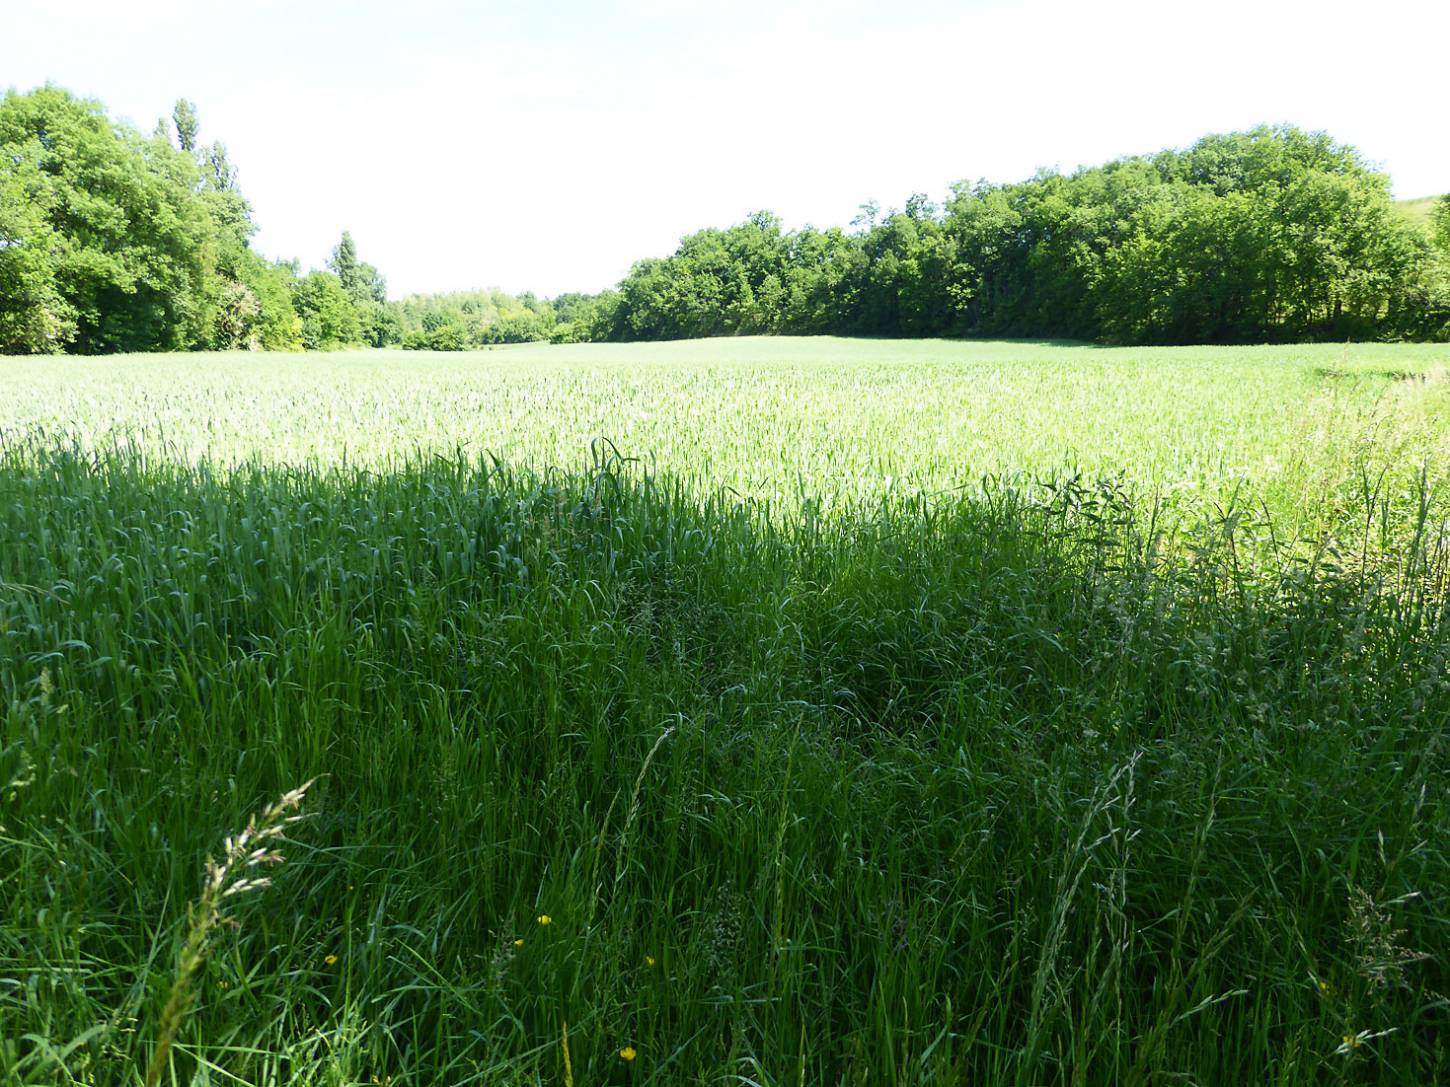 visiting heritage wheat farmer <a href='https://www.facebook.com/paysanbio.semencespaysannes' target='_blank'>Phillipe Guichard</a>, France, May '17 - 10:56am&nbsp;15<sup>th</sup>&nbsp;May.&nbsp;'17  <a href='http://maps.google.com/?t=h&q=44.478347,0.656506&z=18&output=embed' target=_blank><img src='http://www.brockwell-bake.org.uk/img/marker.png' style='border:none;vertical-align:top' height=16px></a>